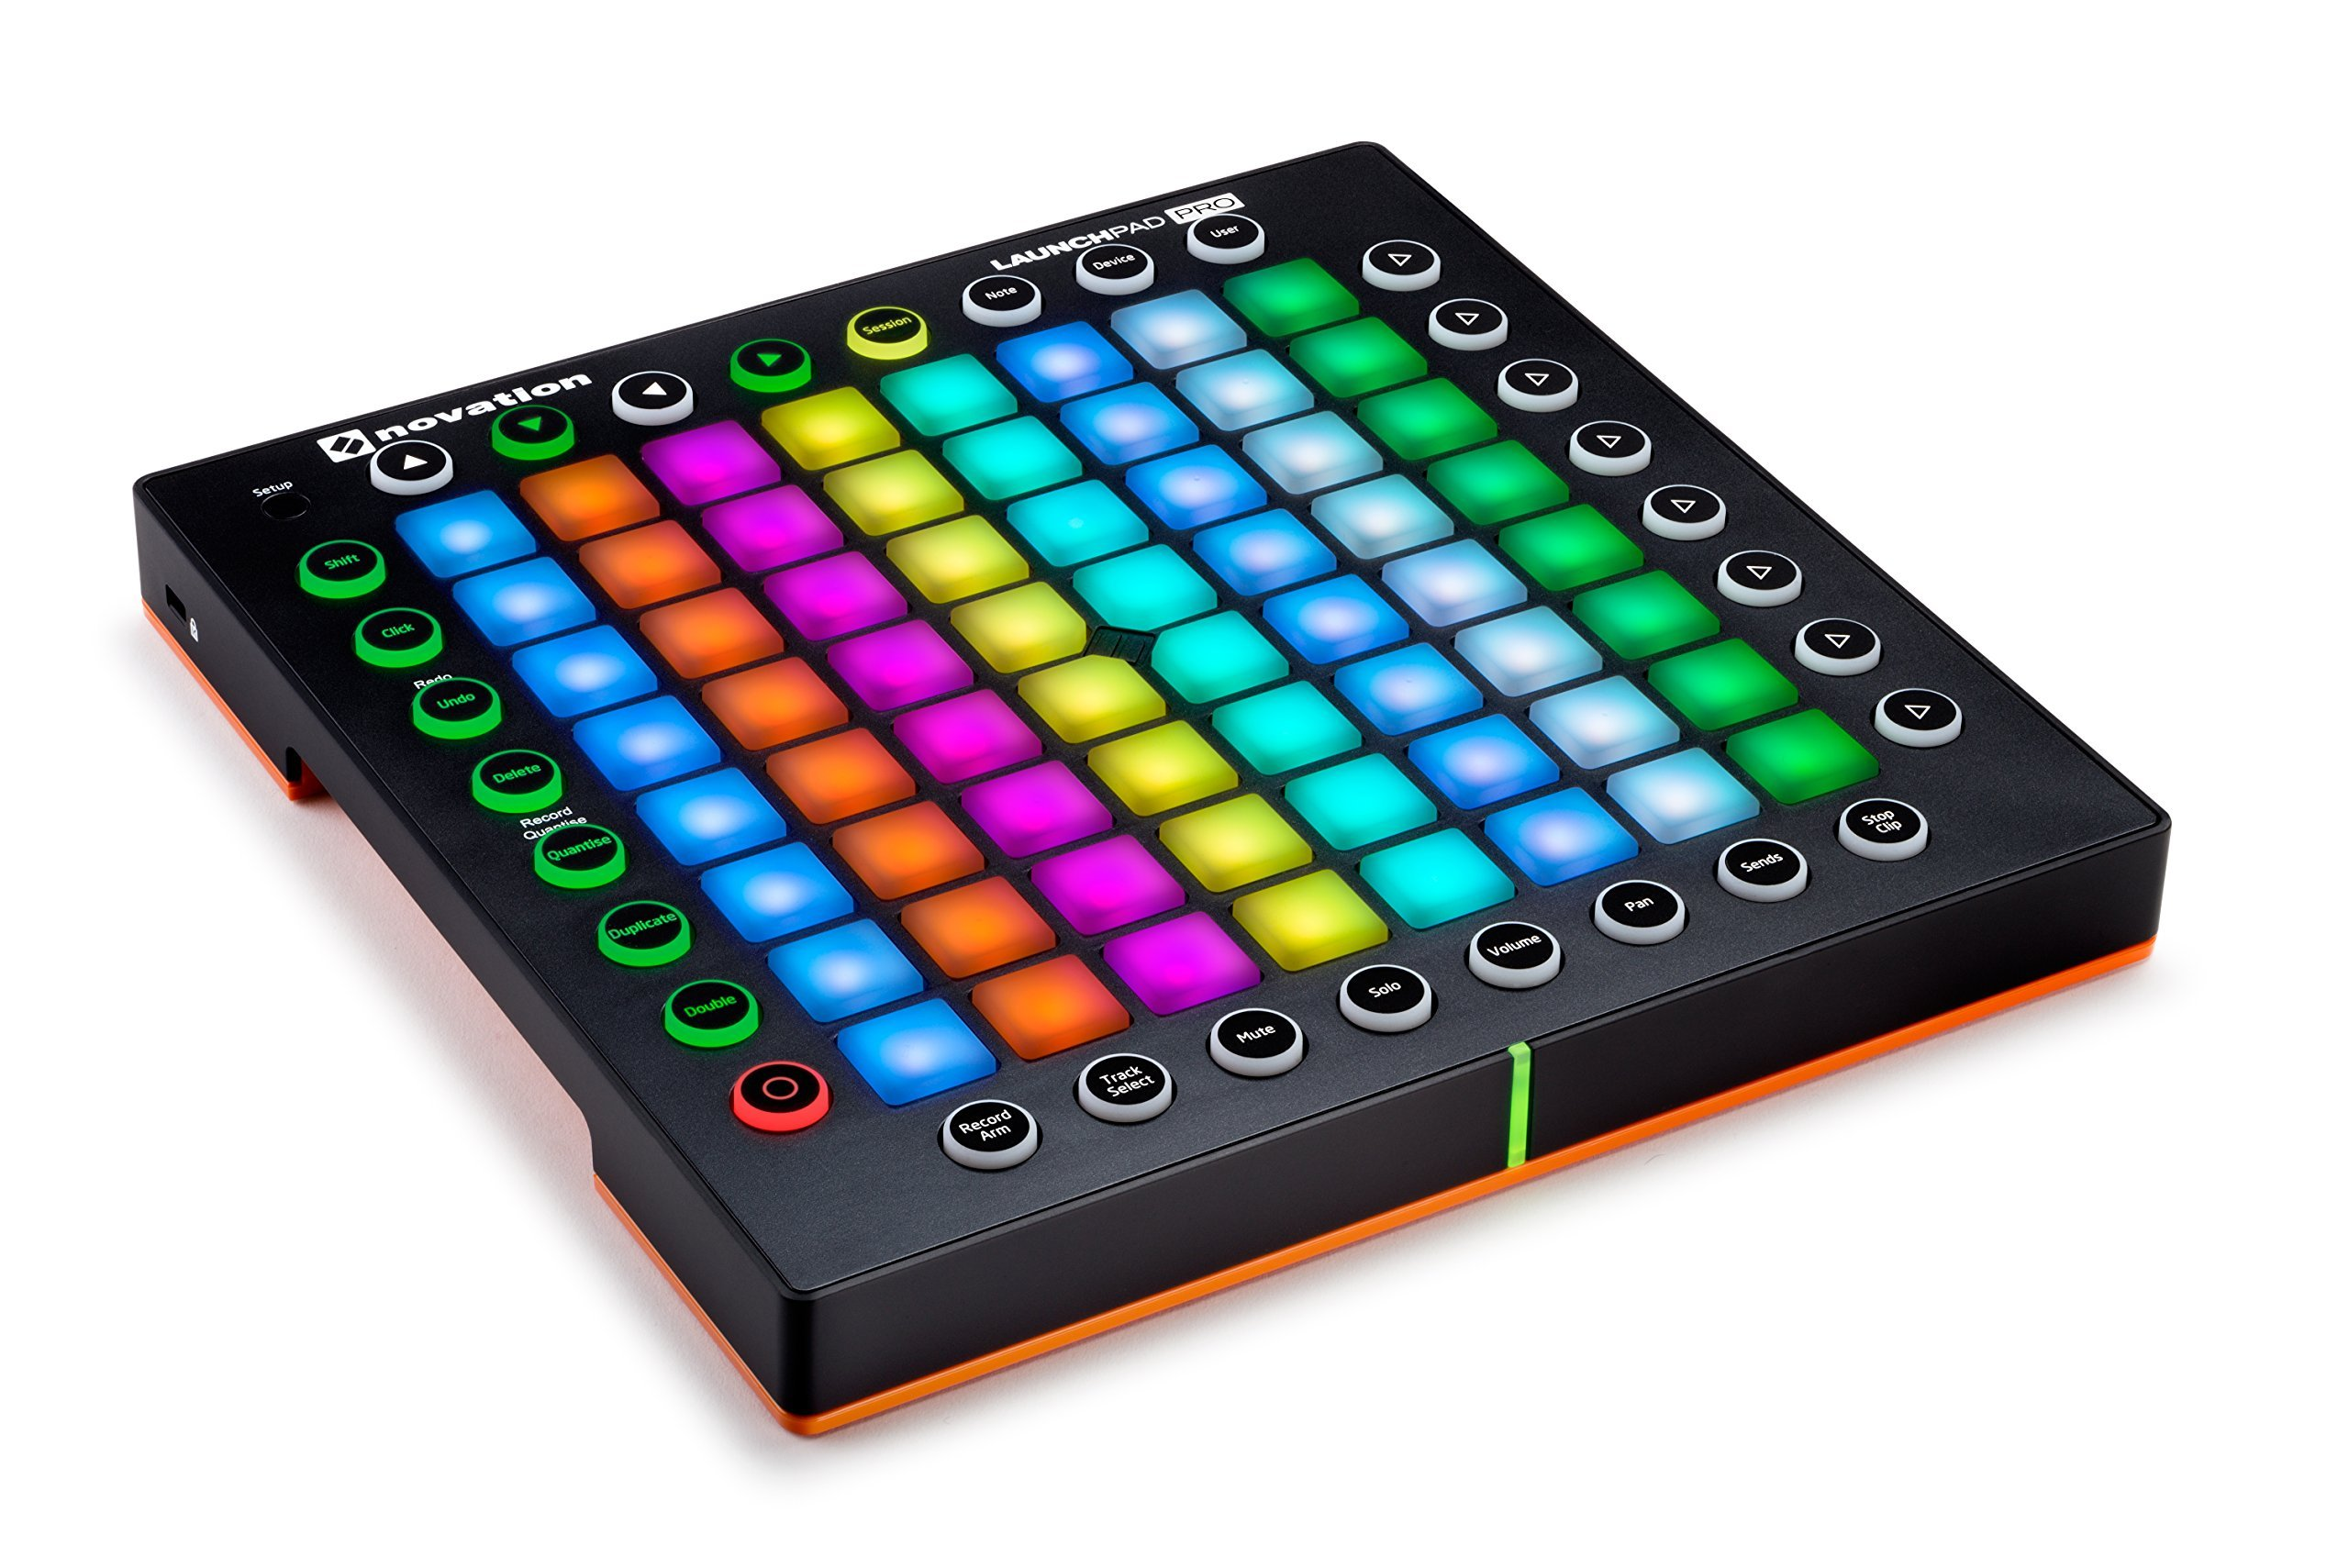 Novation Launchpad Pro Professional 64-Pad Grid Performance Instrument for Ableton with MIDI I/O by Novation